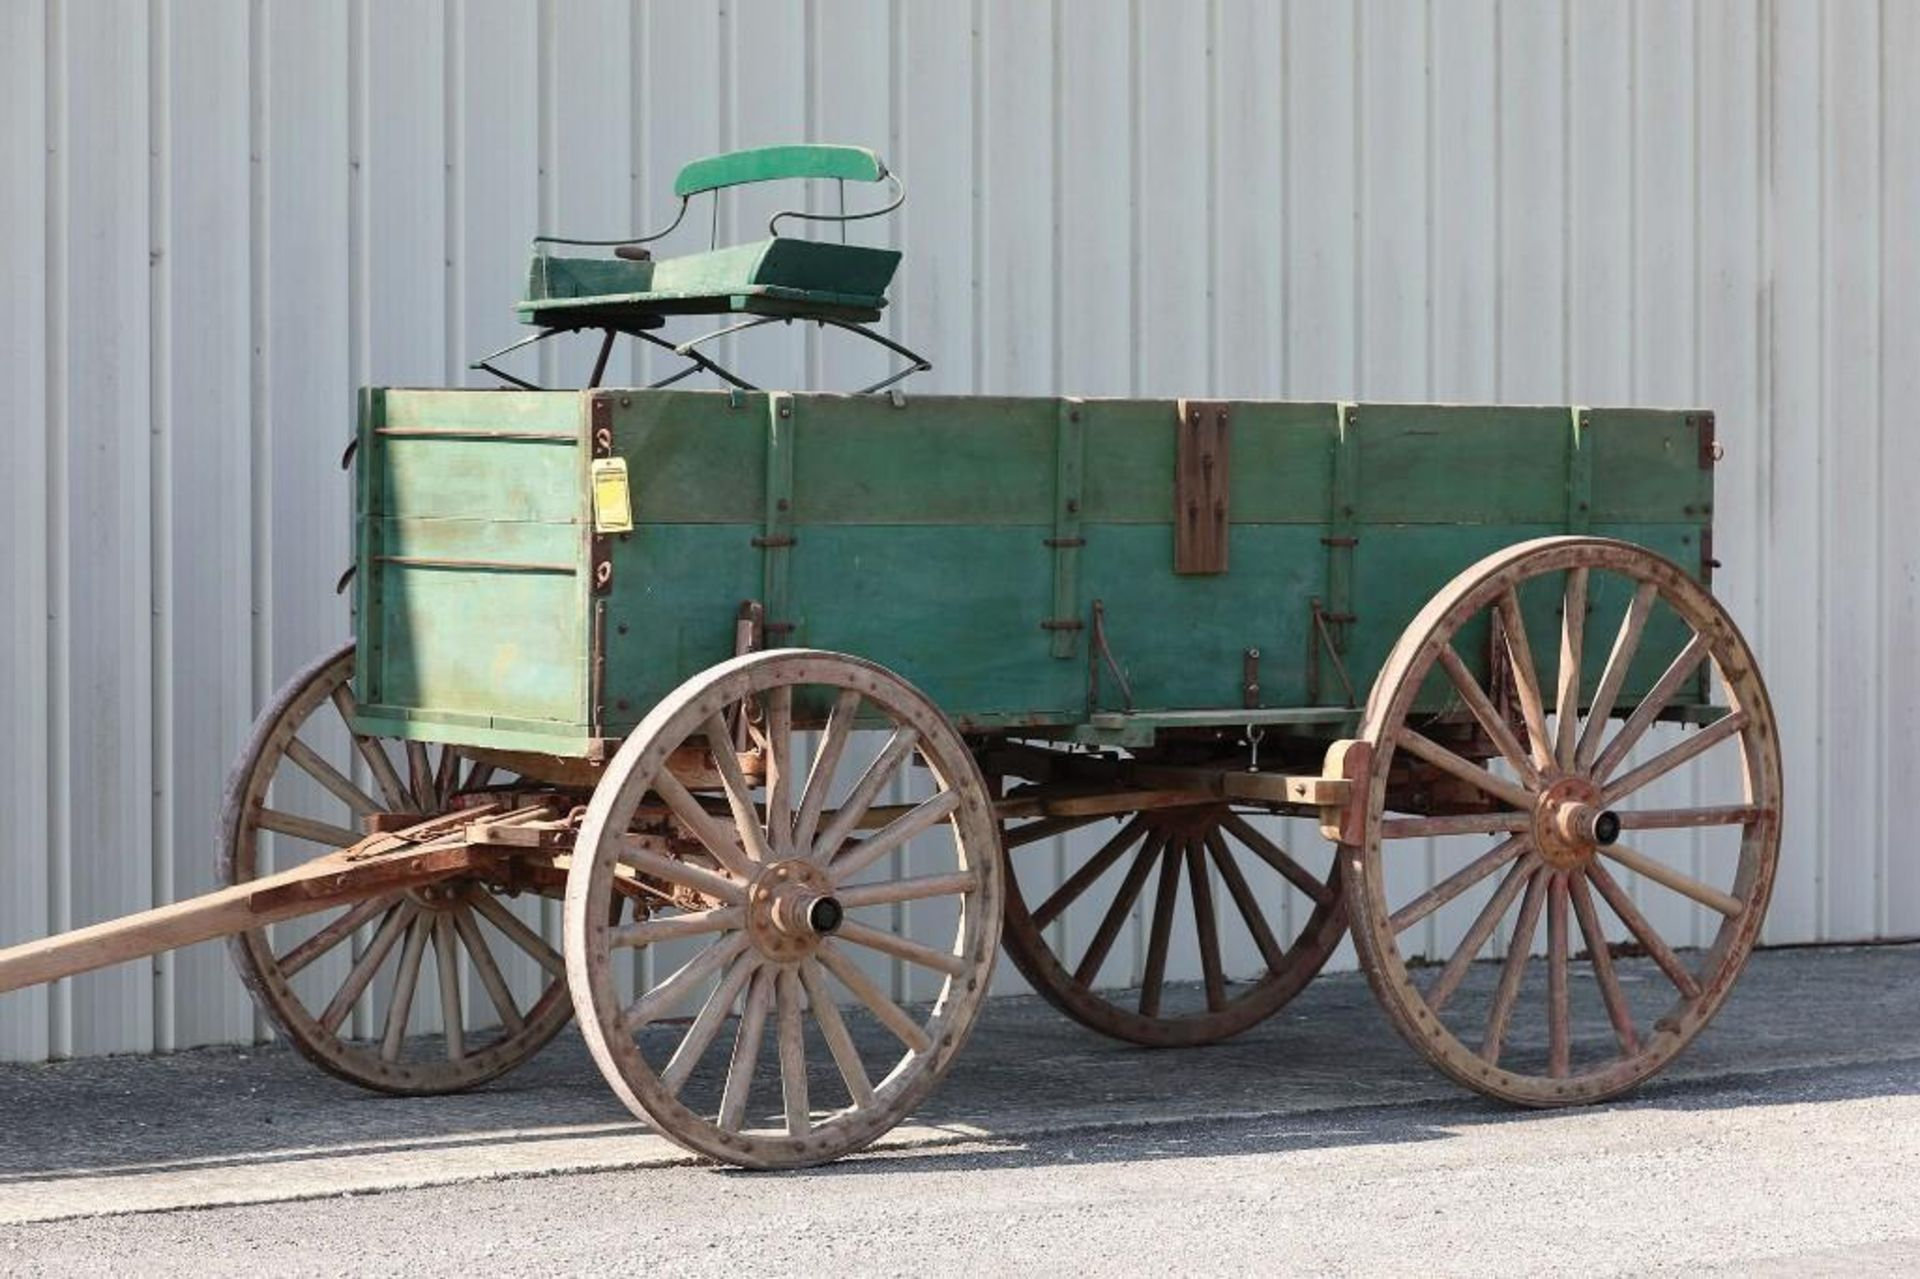 2-Board Box Bed Farm Wagon, Heavy Chassis, Mine Use Marked LW25 - Image 2 of 2